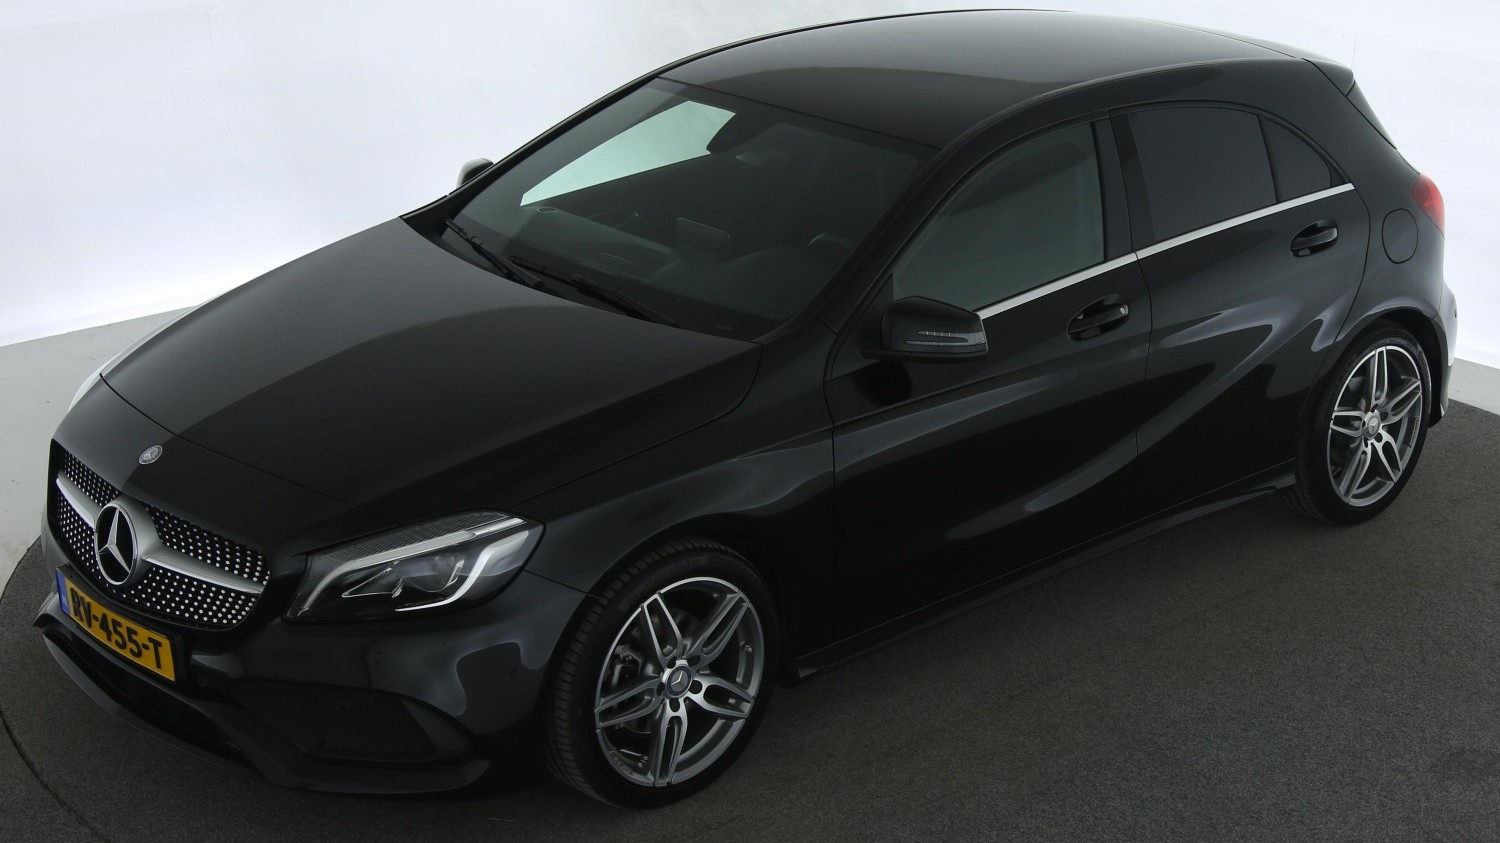 Mercedes-Benz A-klasse Hatchback 2017 RV-455-T 1